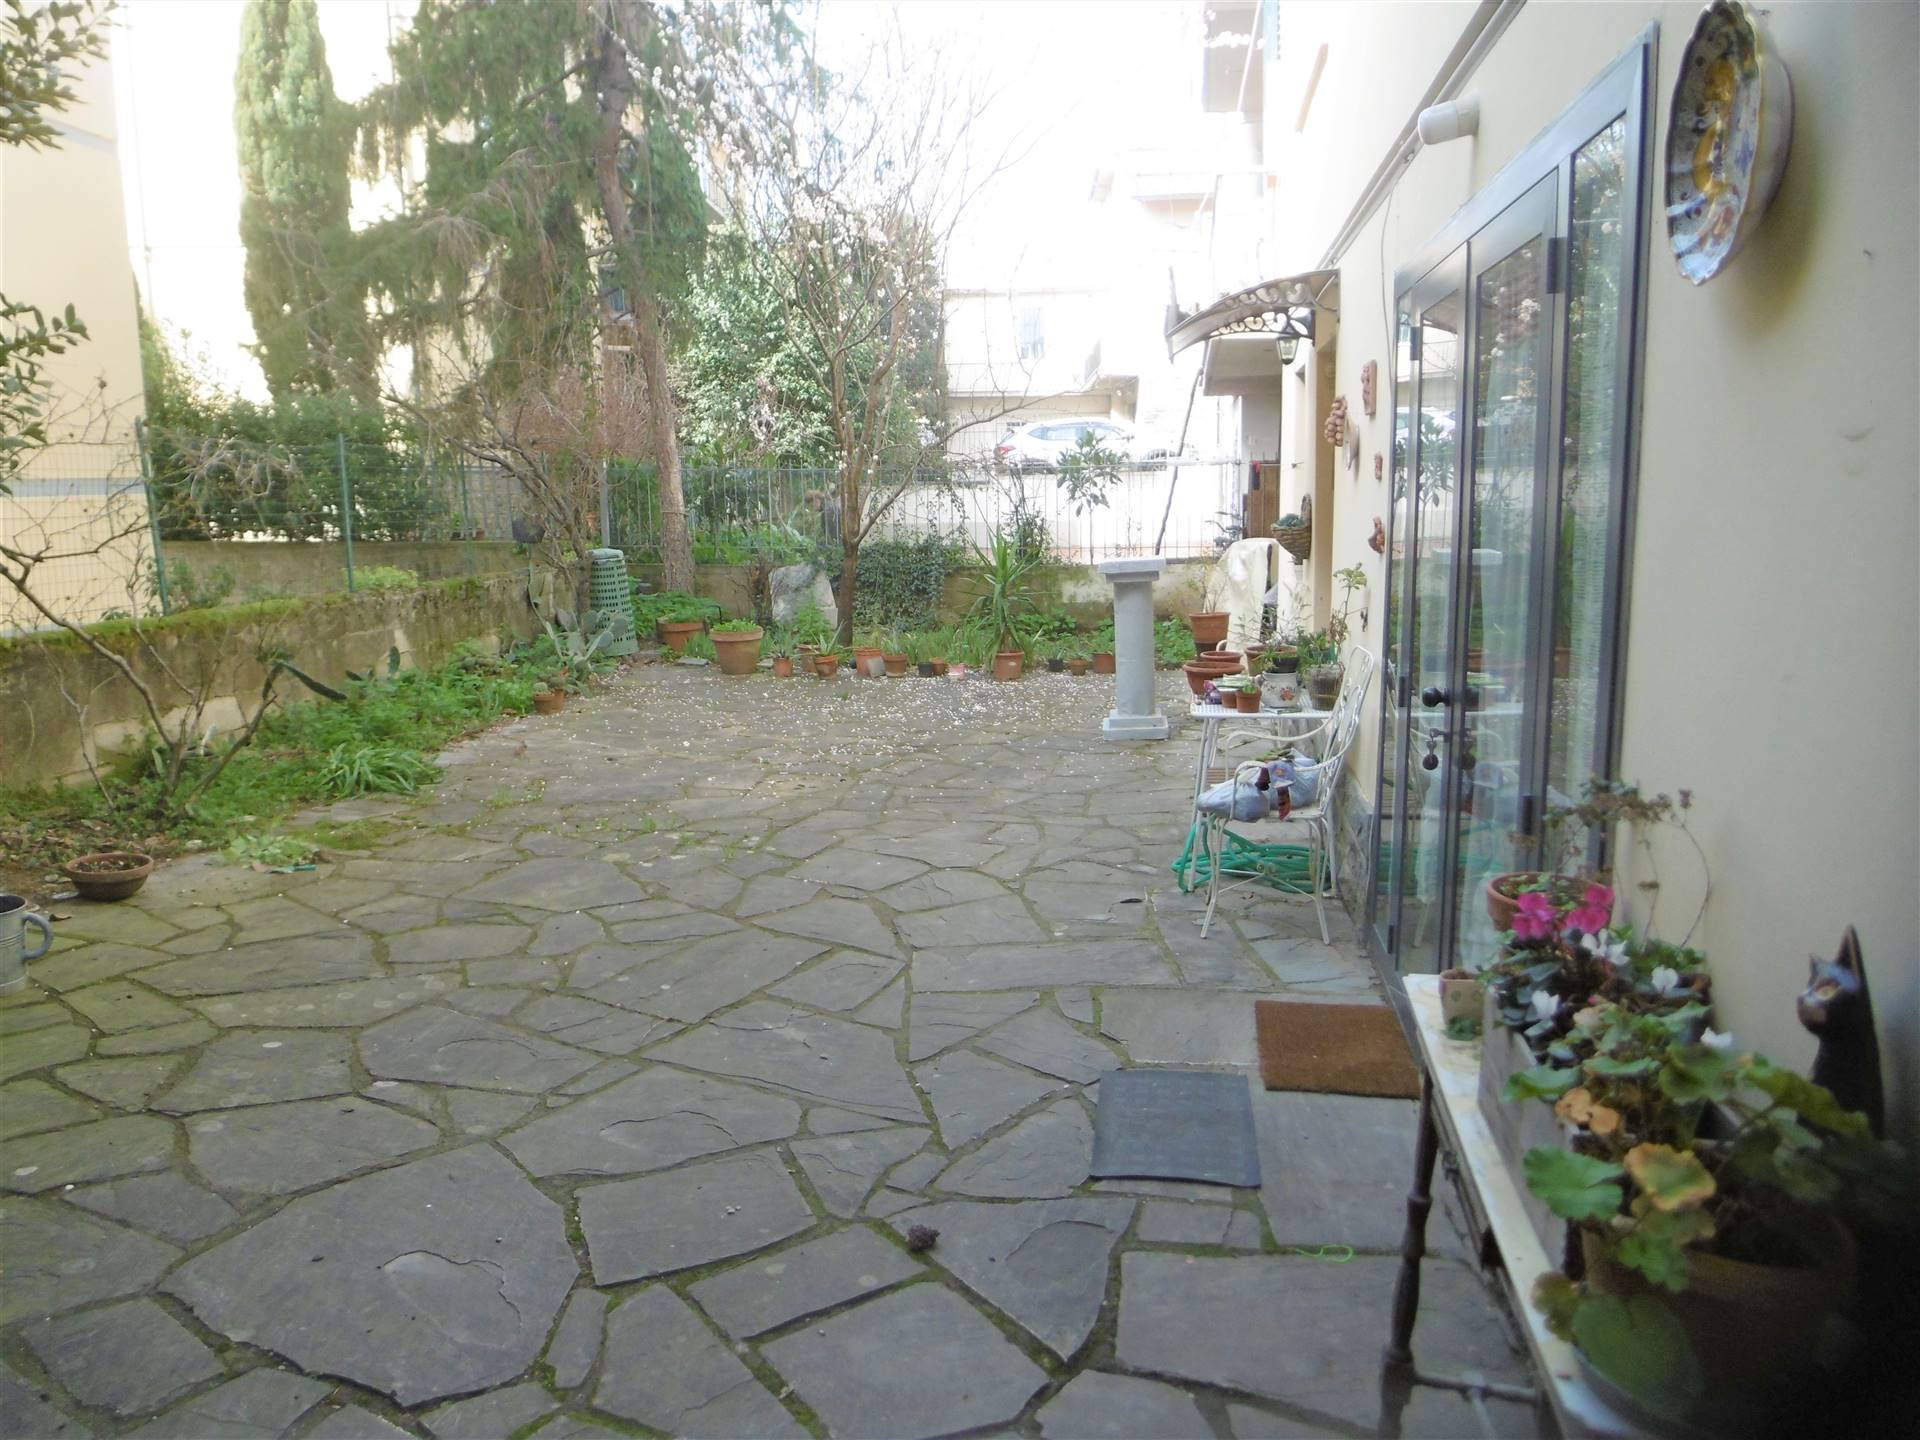 LA MACINE, PRATO, Apartment for sale of 157 Sq. mt., Good condition, Heating Individual heating system, placed at 1° on 1, composed by: 6 Rooms,